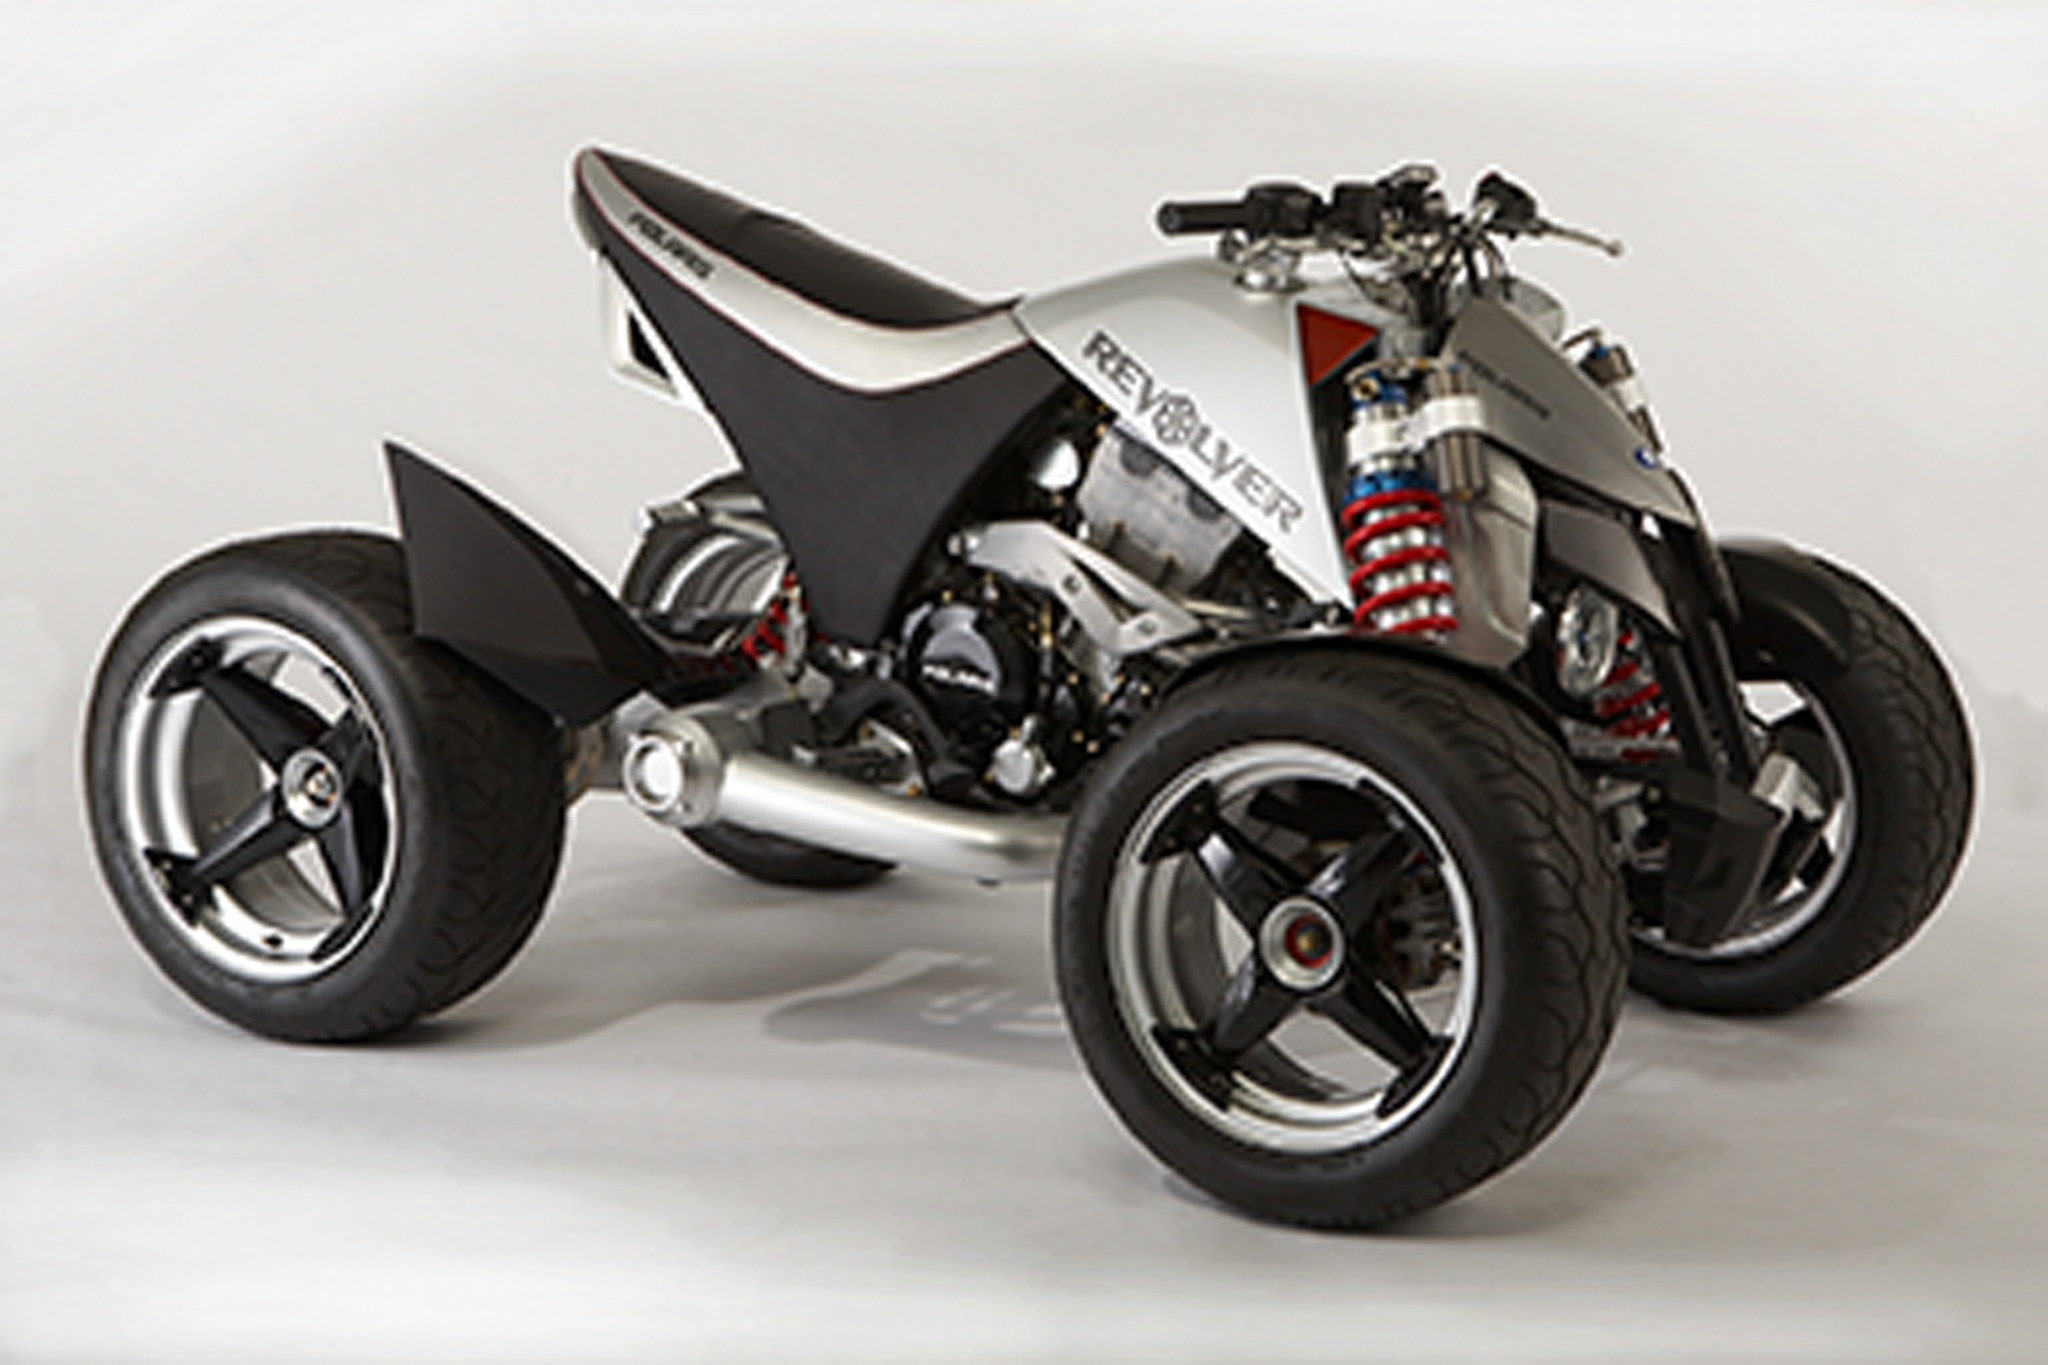 Revolver Concept By Polaris Industries Inc Usa